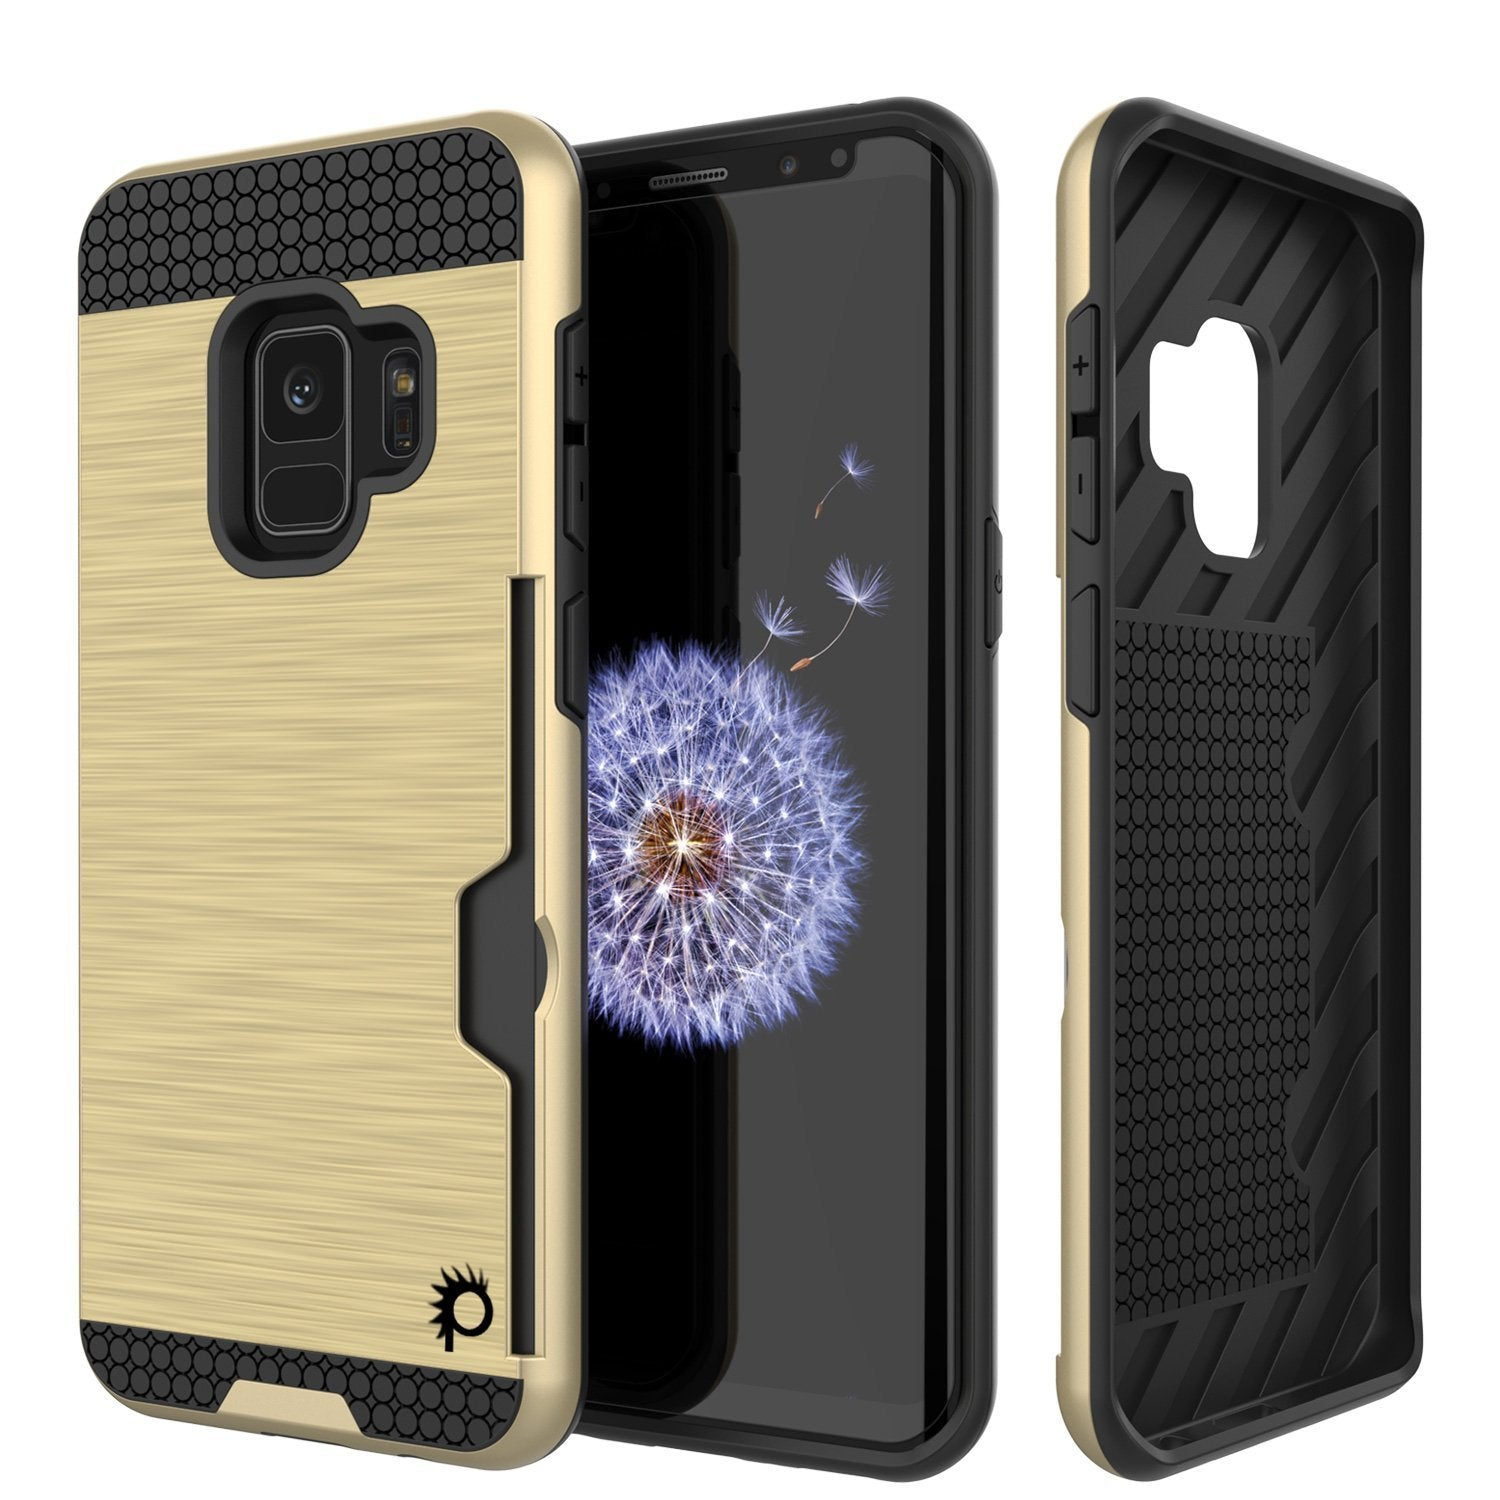 Galaxy S9 Dual-Layer, Anti-Shock, SLOT Series Slim-Fit Case [Gold]